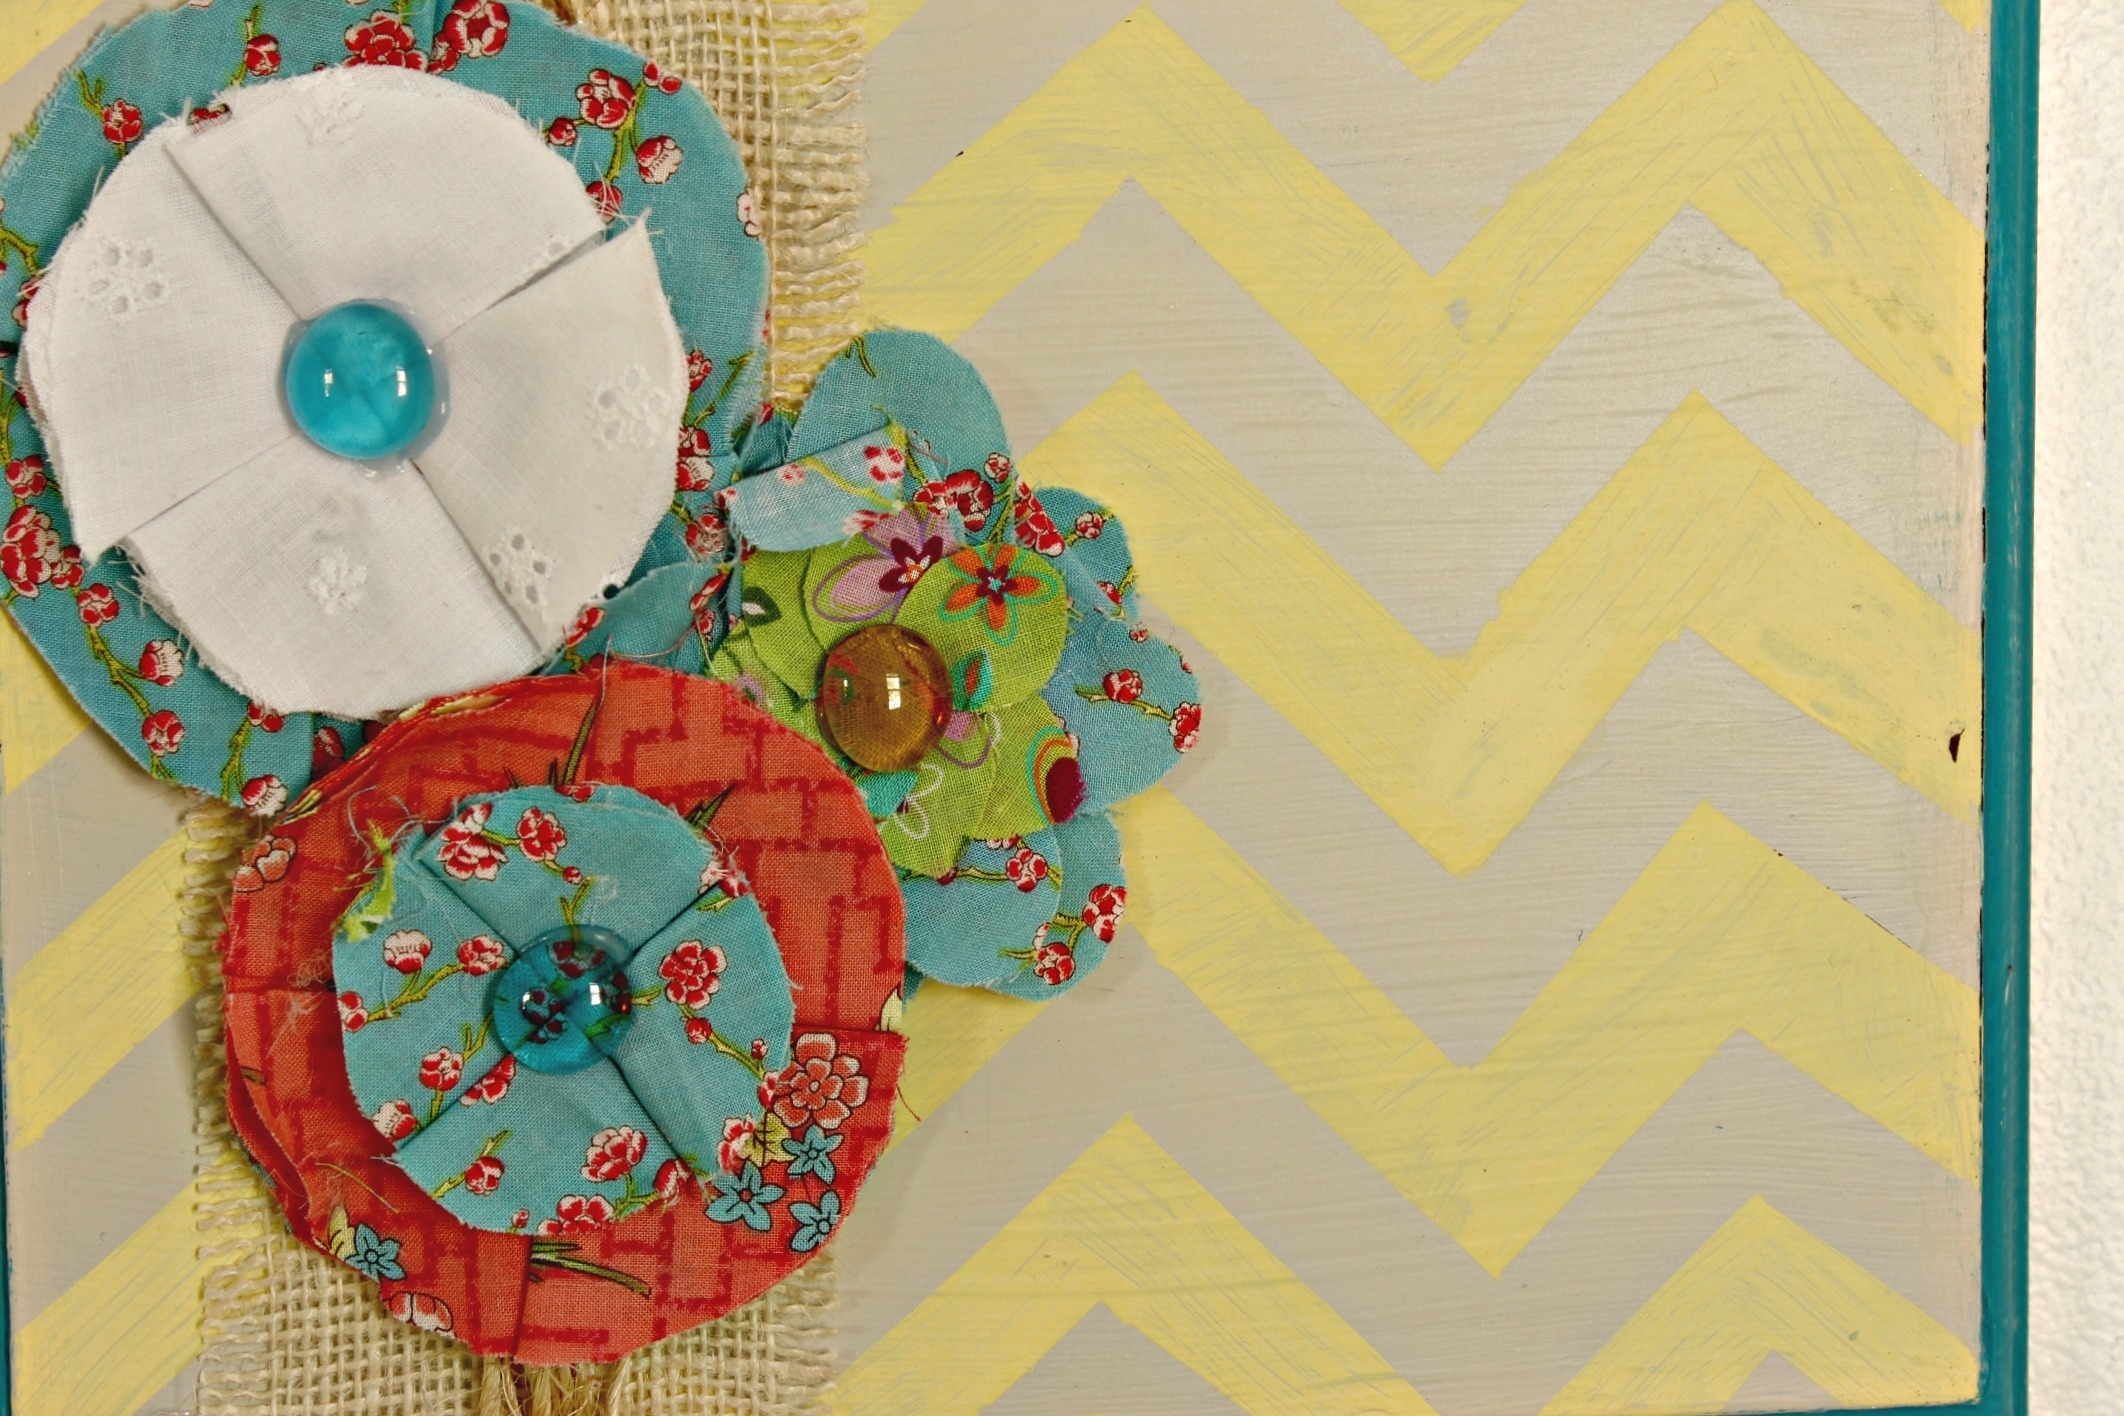 Image Gallery of Diy Fabric Flower Wall Art (View 13 of 15 Photos)